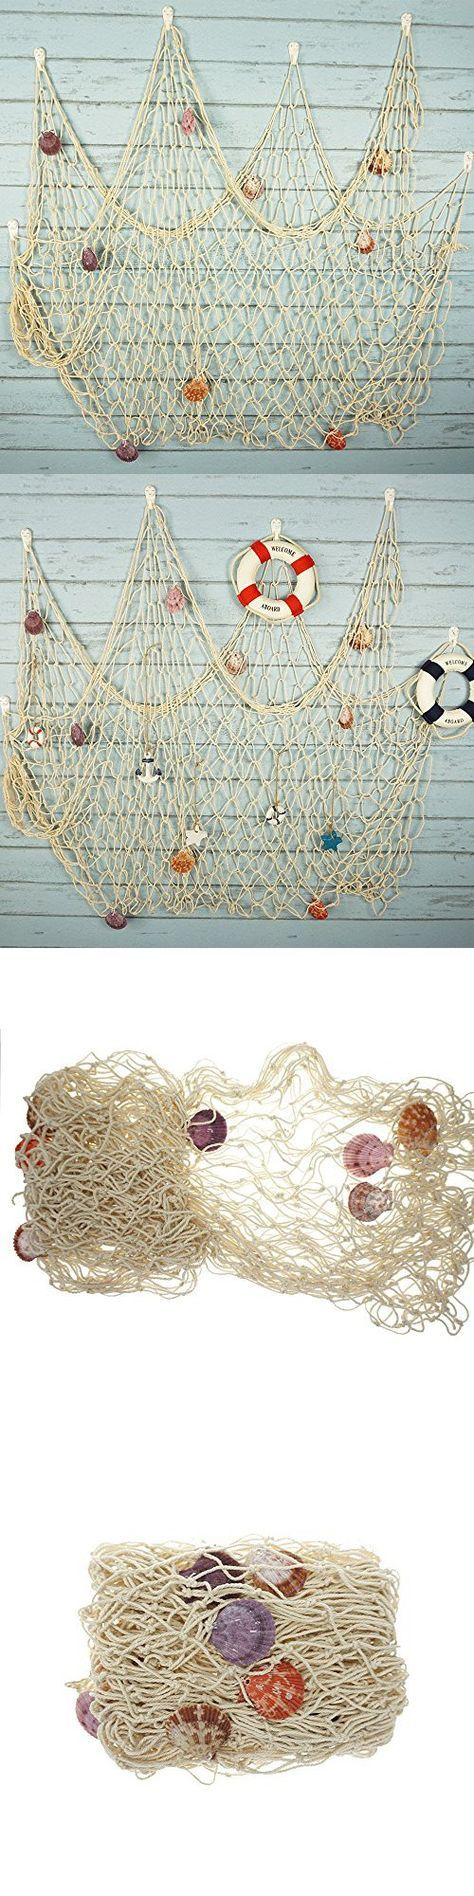 Bilipala Rustic Decorative Fishing Net Wall Decor with Seashells, Nautical Style Wall Hangings Ornaments, Creamy White